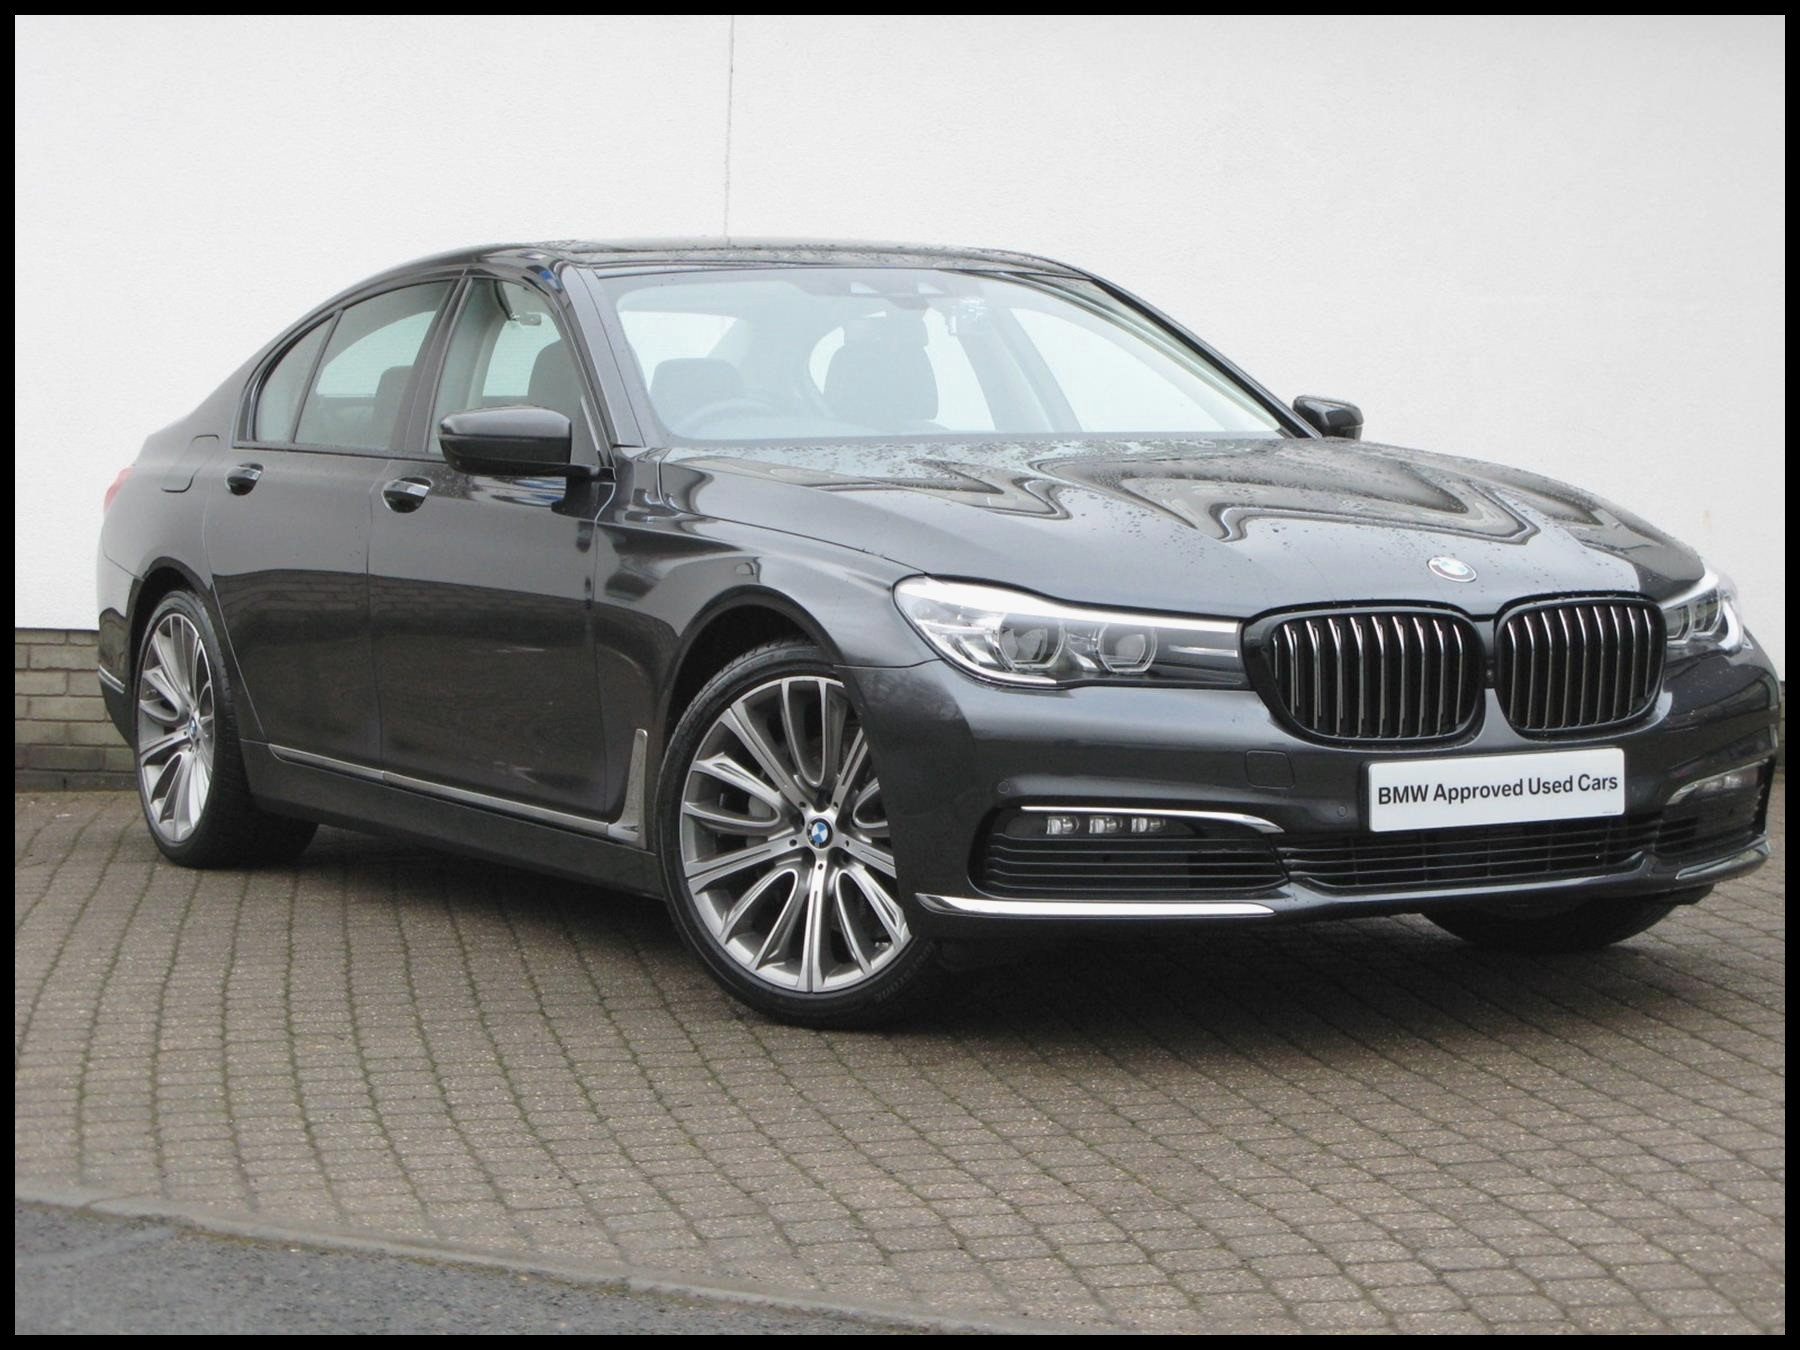 Used Bmw 745i for Sale Lovely Awesome Used 2017 Bmw 7 Series G11 740d Xdrive Saloon